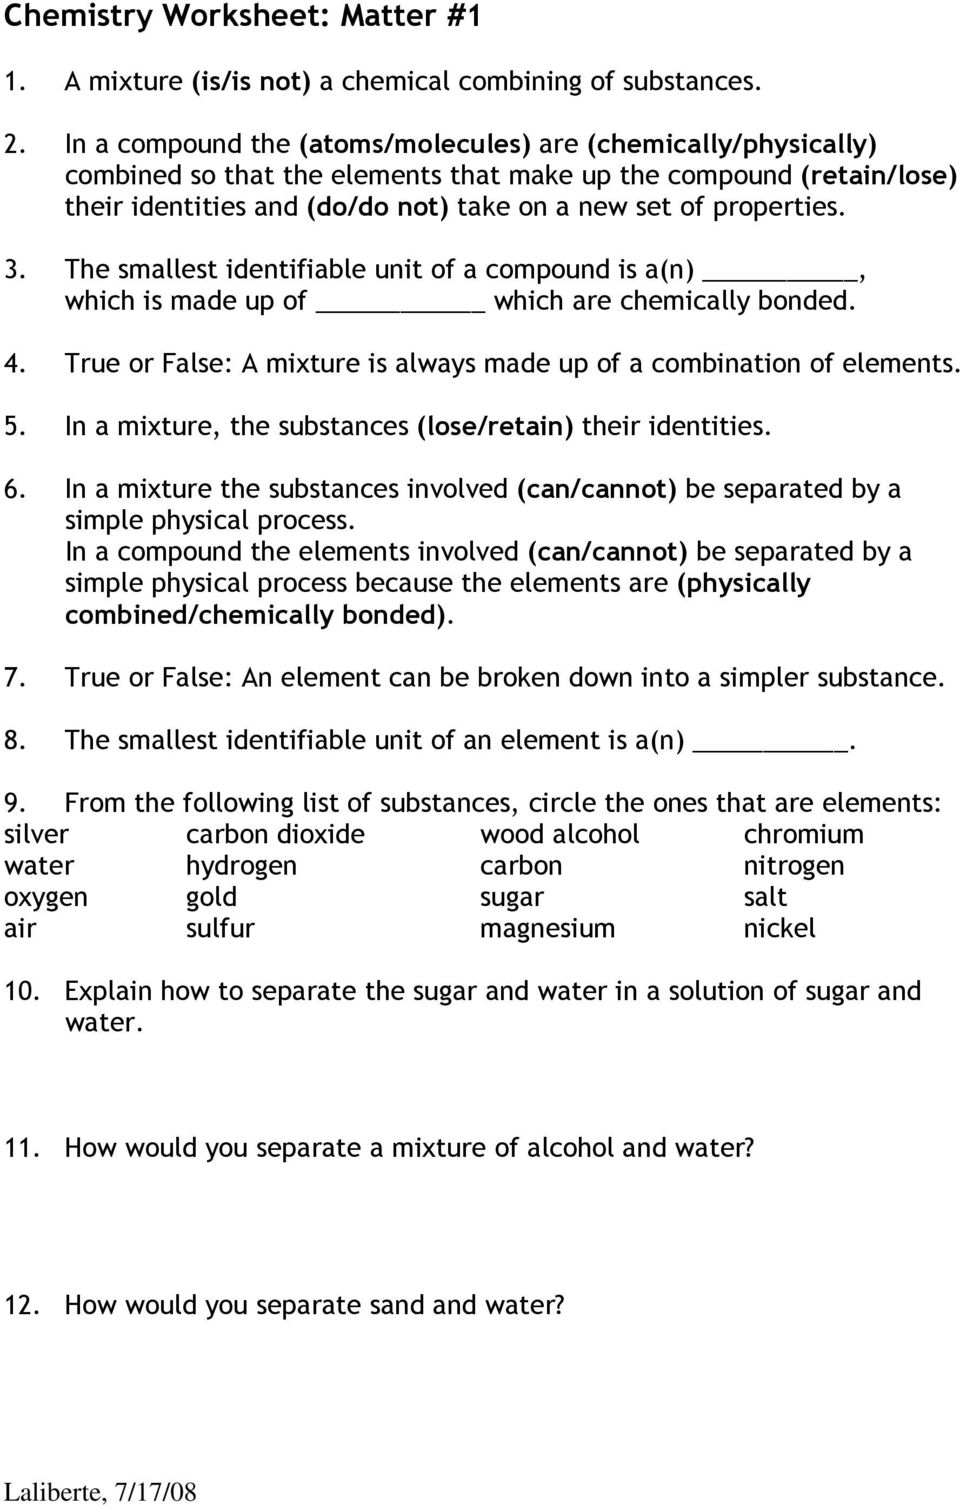 Clifying Matter Worksheet Answers   Lobo Black in addition beginning chemistry worksheets together with Chemistry Worksheet Matter 1 Answer Key Awesome Clification Of together with Chemistry Worksheet Matter 1   Winonarasheed furthermore Chemistry Worksheet Matter 1 Answers   Sanfranciscolife additionally free chemistry worksheets in addition  furthermore  additionally  together with Chemistry Worksheet Matter 1   Homedressage in addition  additionally Chemistry Worksheet  Matter  1   PDF together with Chemistry Worksheet Matter 1 Answers Clification Of Chemical likewise Chemistry Worksheet Matter 1 Answers   Sanfranciscolife in addition Chemistry Worksheet Matter 1 Answers Elegant Chemistry 1 Worksheet moreover . on chemistry worksheet matter 1 answers